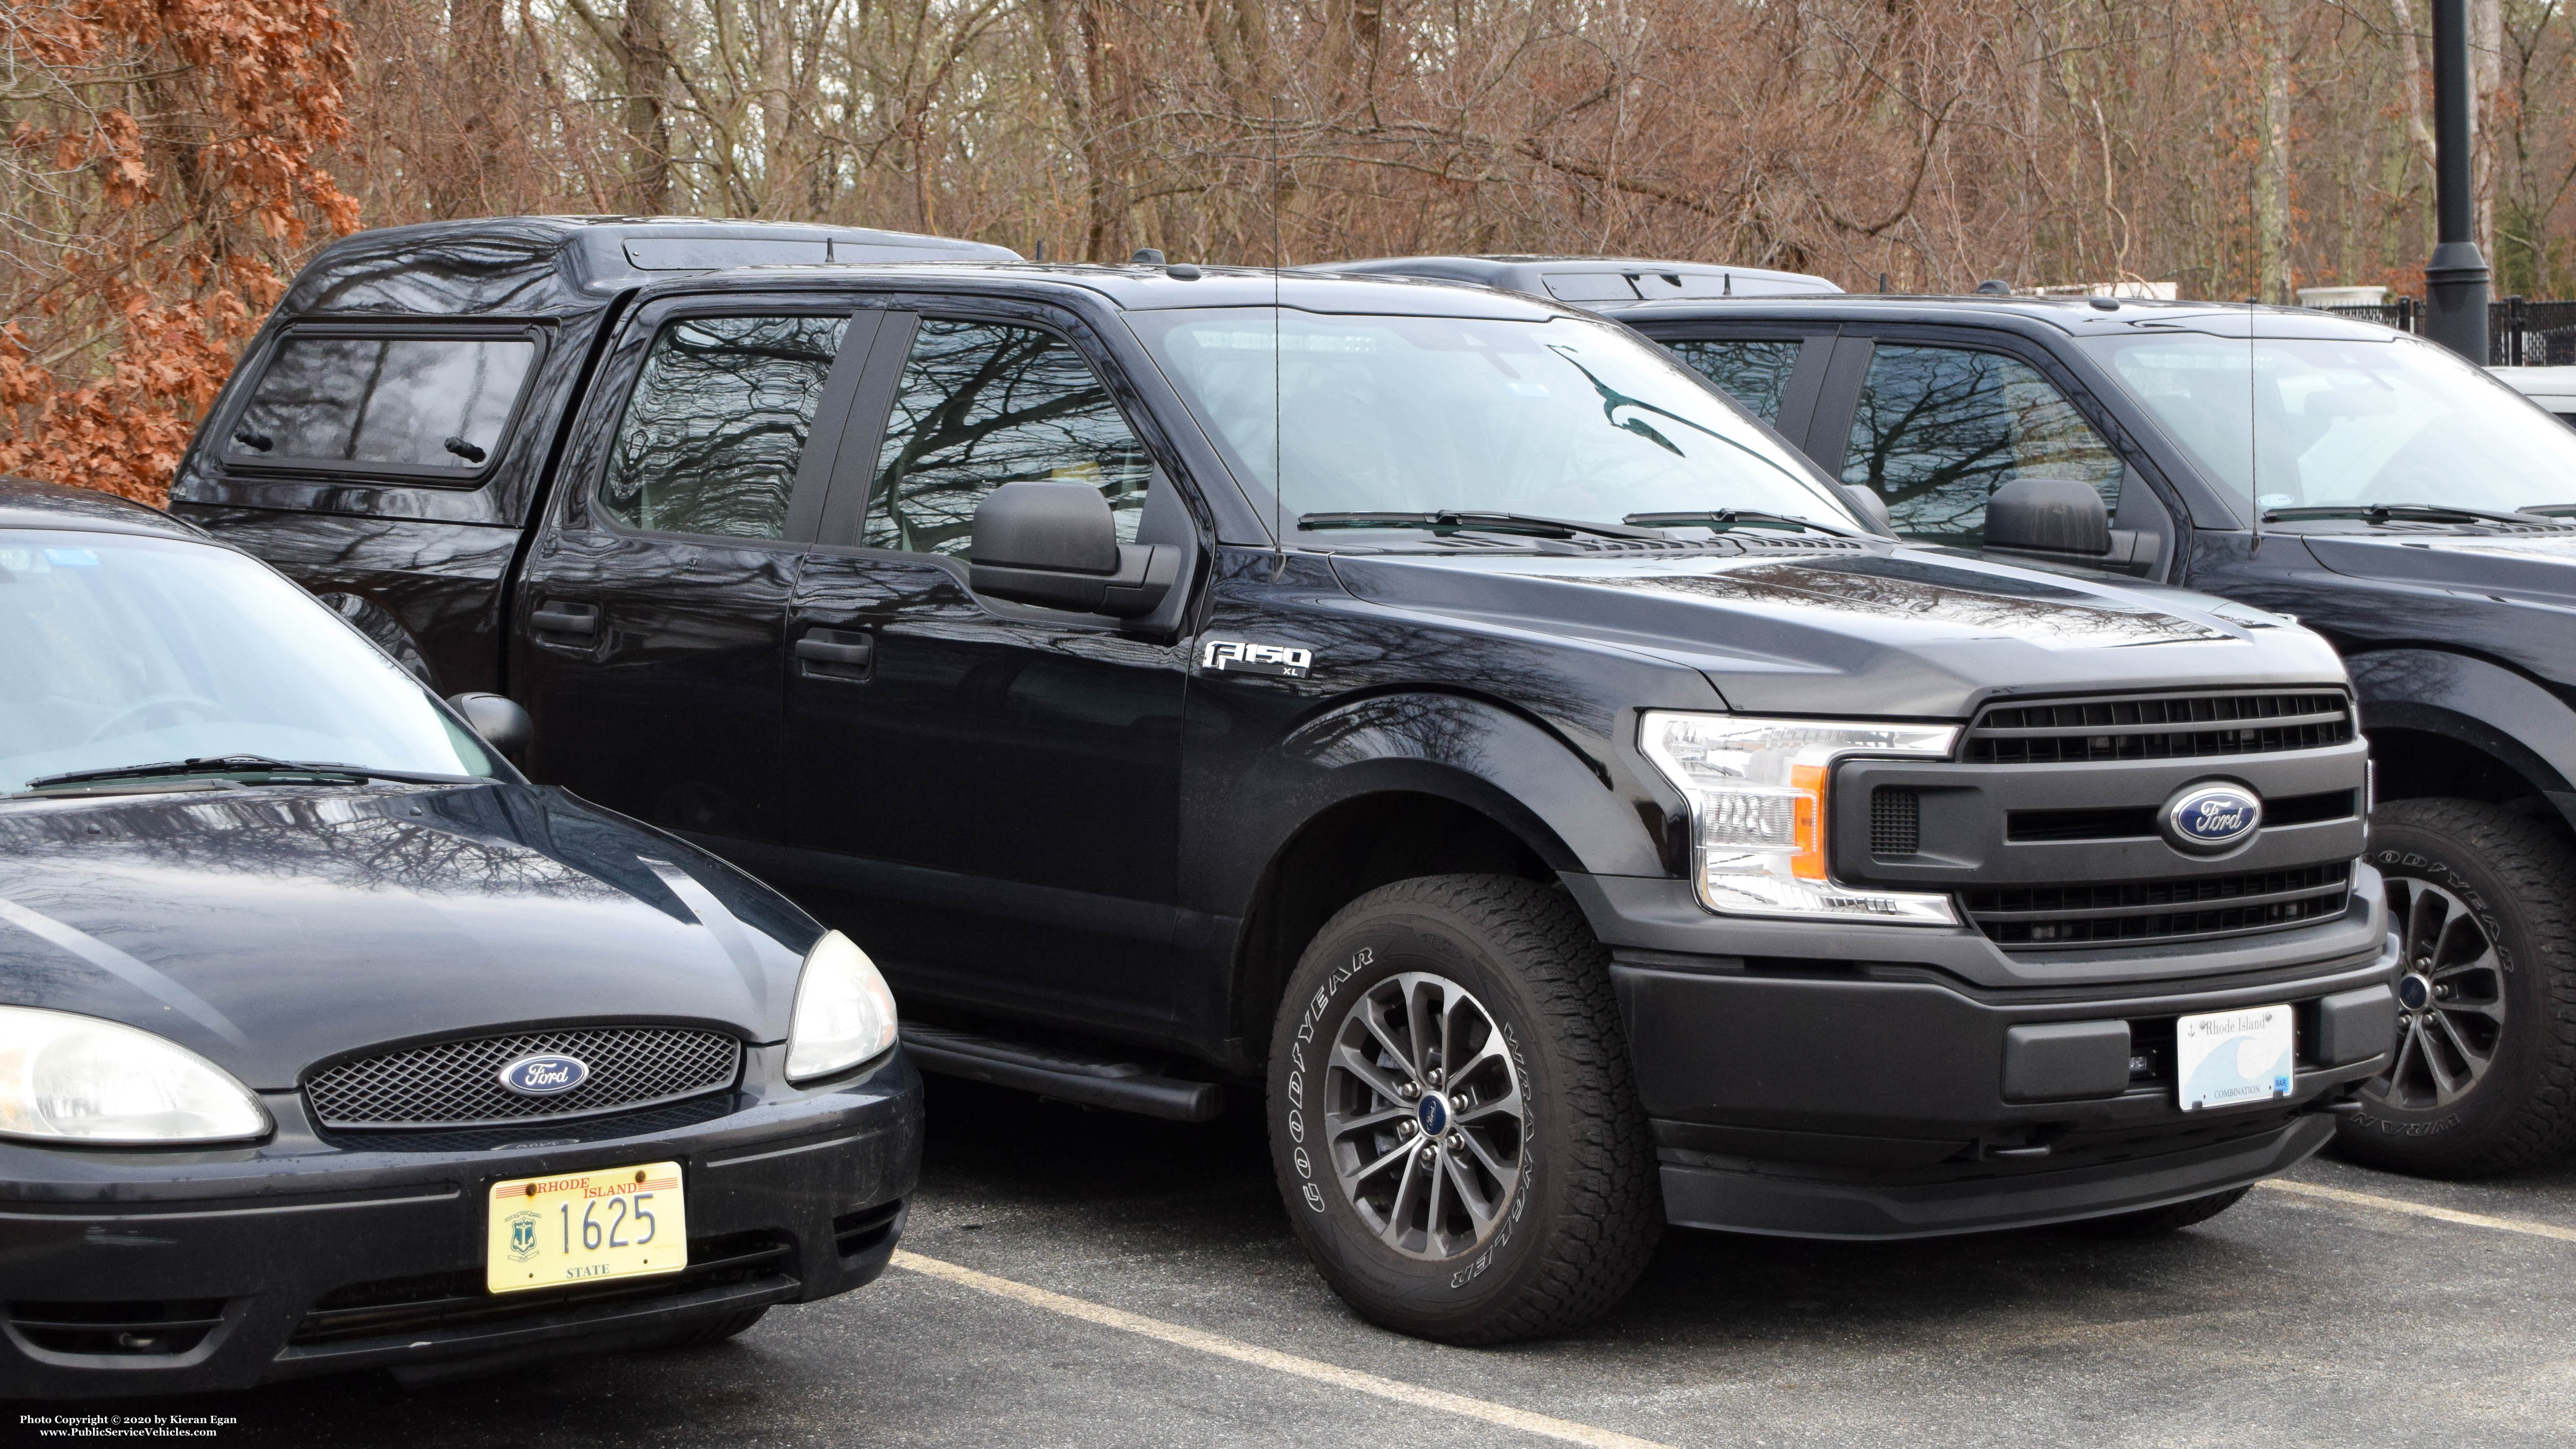 A photo  of Rhode Island State Police             Crime Scene Unit, a 2017-2020 Ford F-150 Crew Cab             taken by Kieran Egan